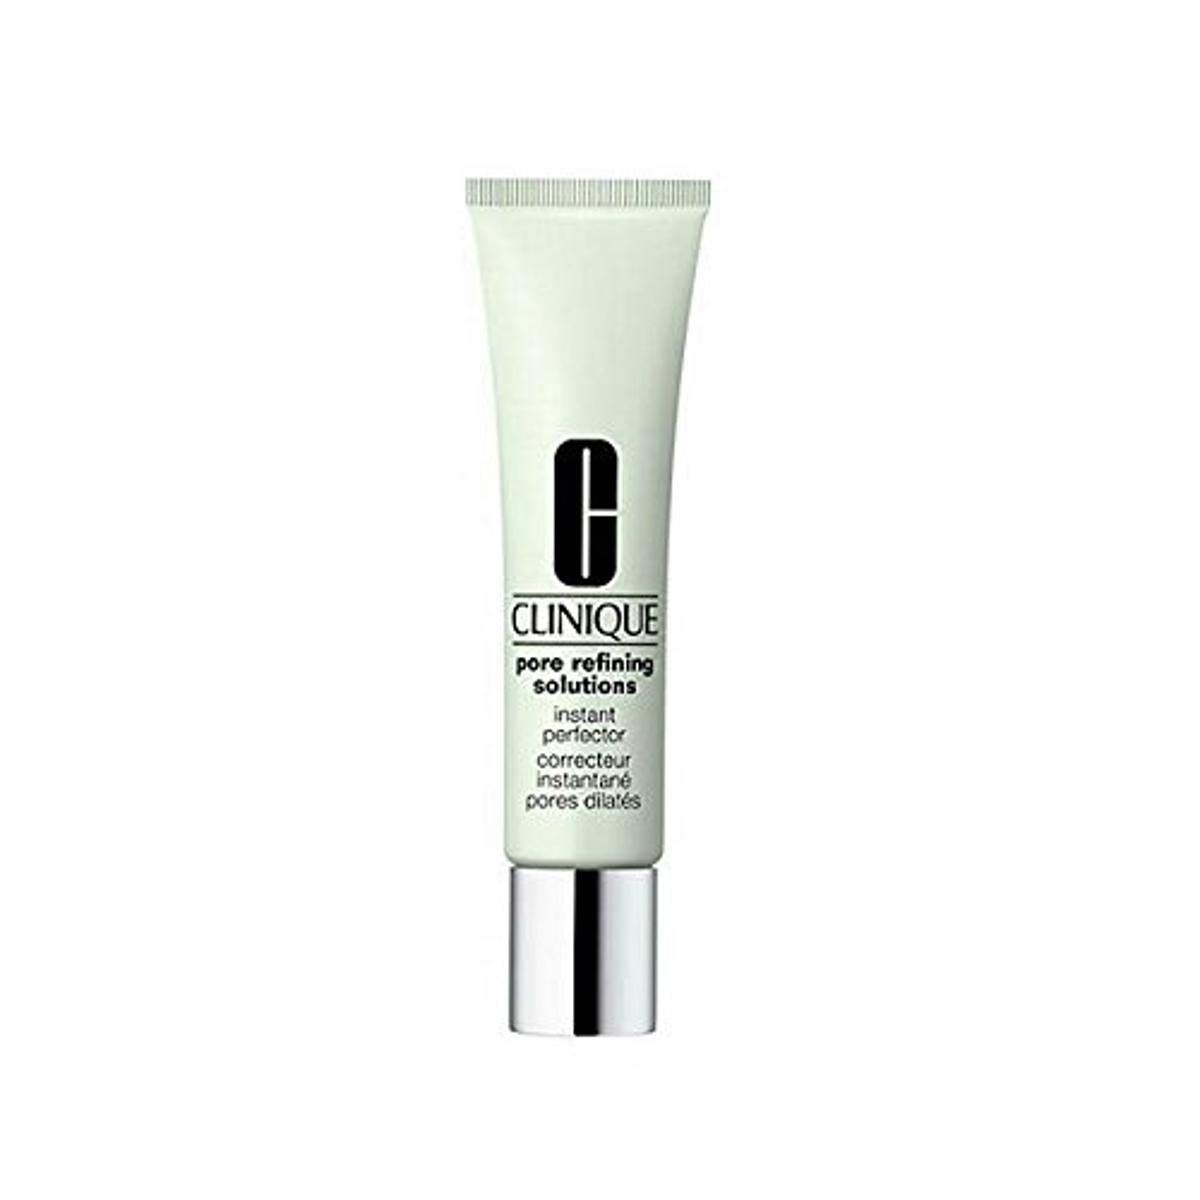 Clinique Pore Refining Solutions Invisible Bright Instant Perfector for Women, 0.5 Ounce